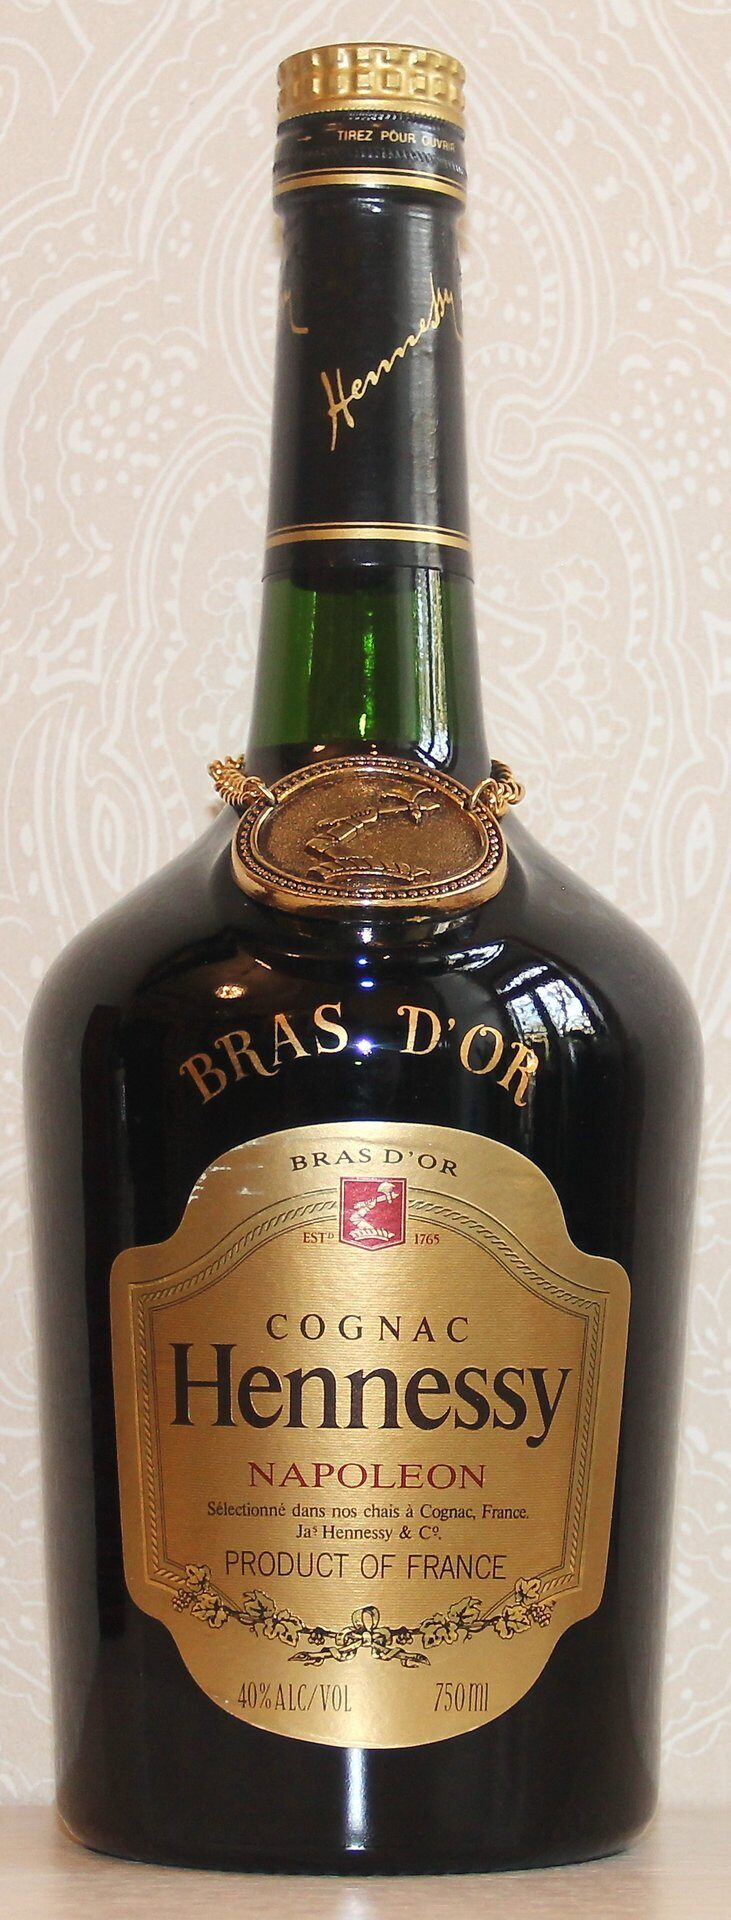 "Hennessy Bras D""Or 0.75L 1970s"